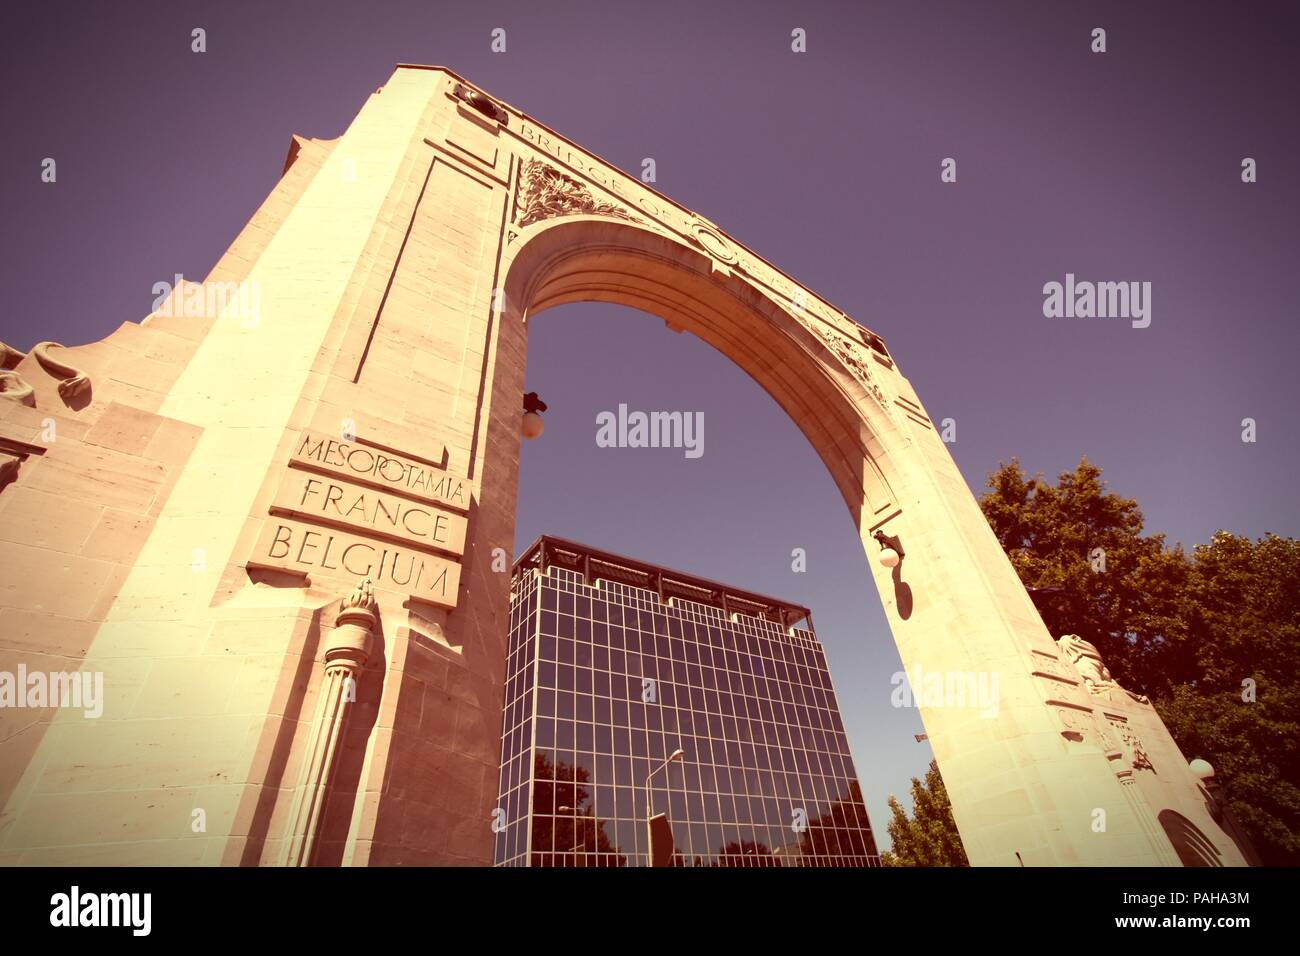 Bridge of Remembrance - War Memorial in Christchurch, New Zealand. Cross processed retro color style. - Stock Image